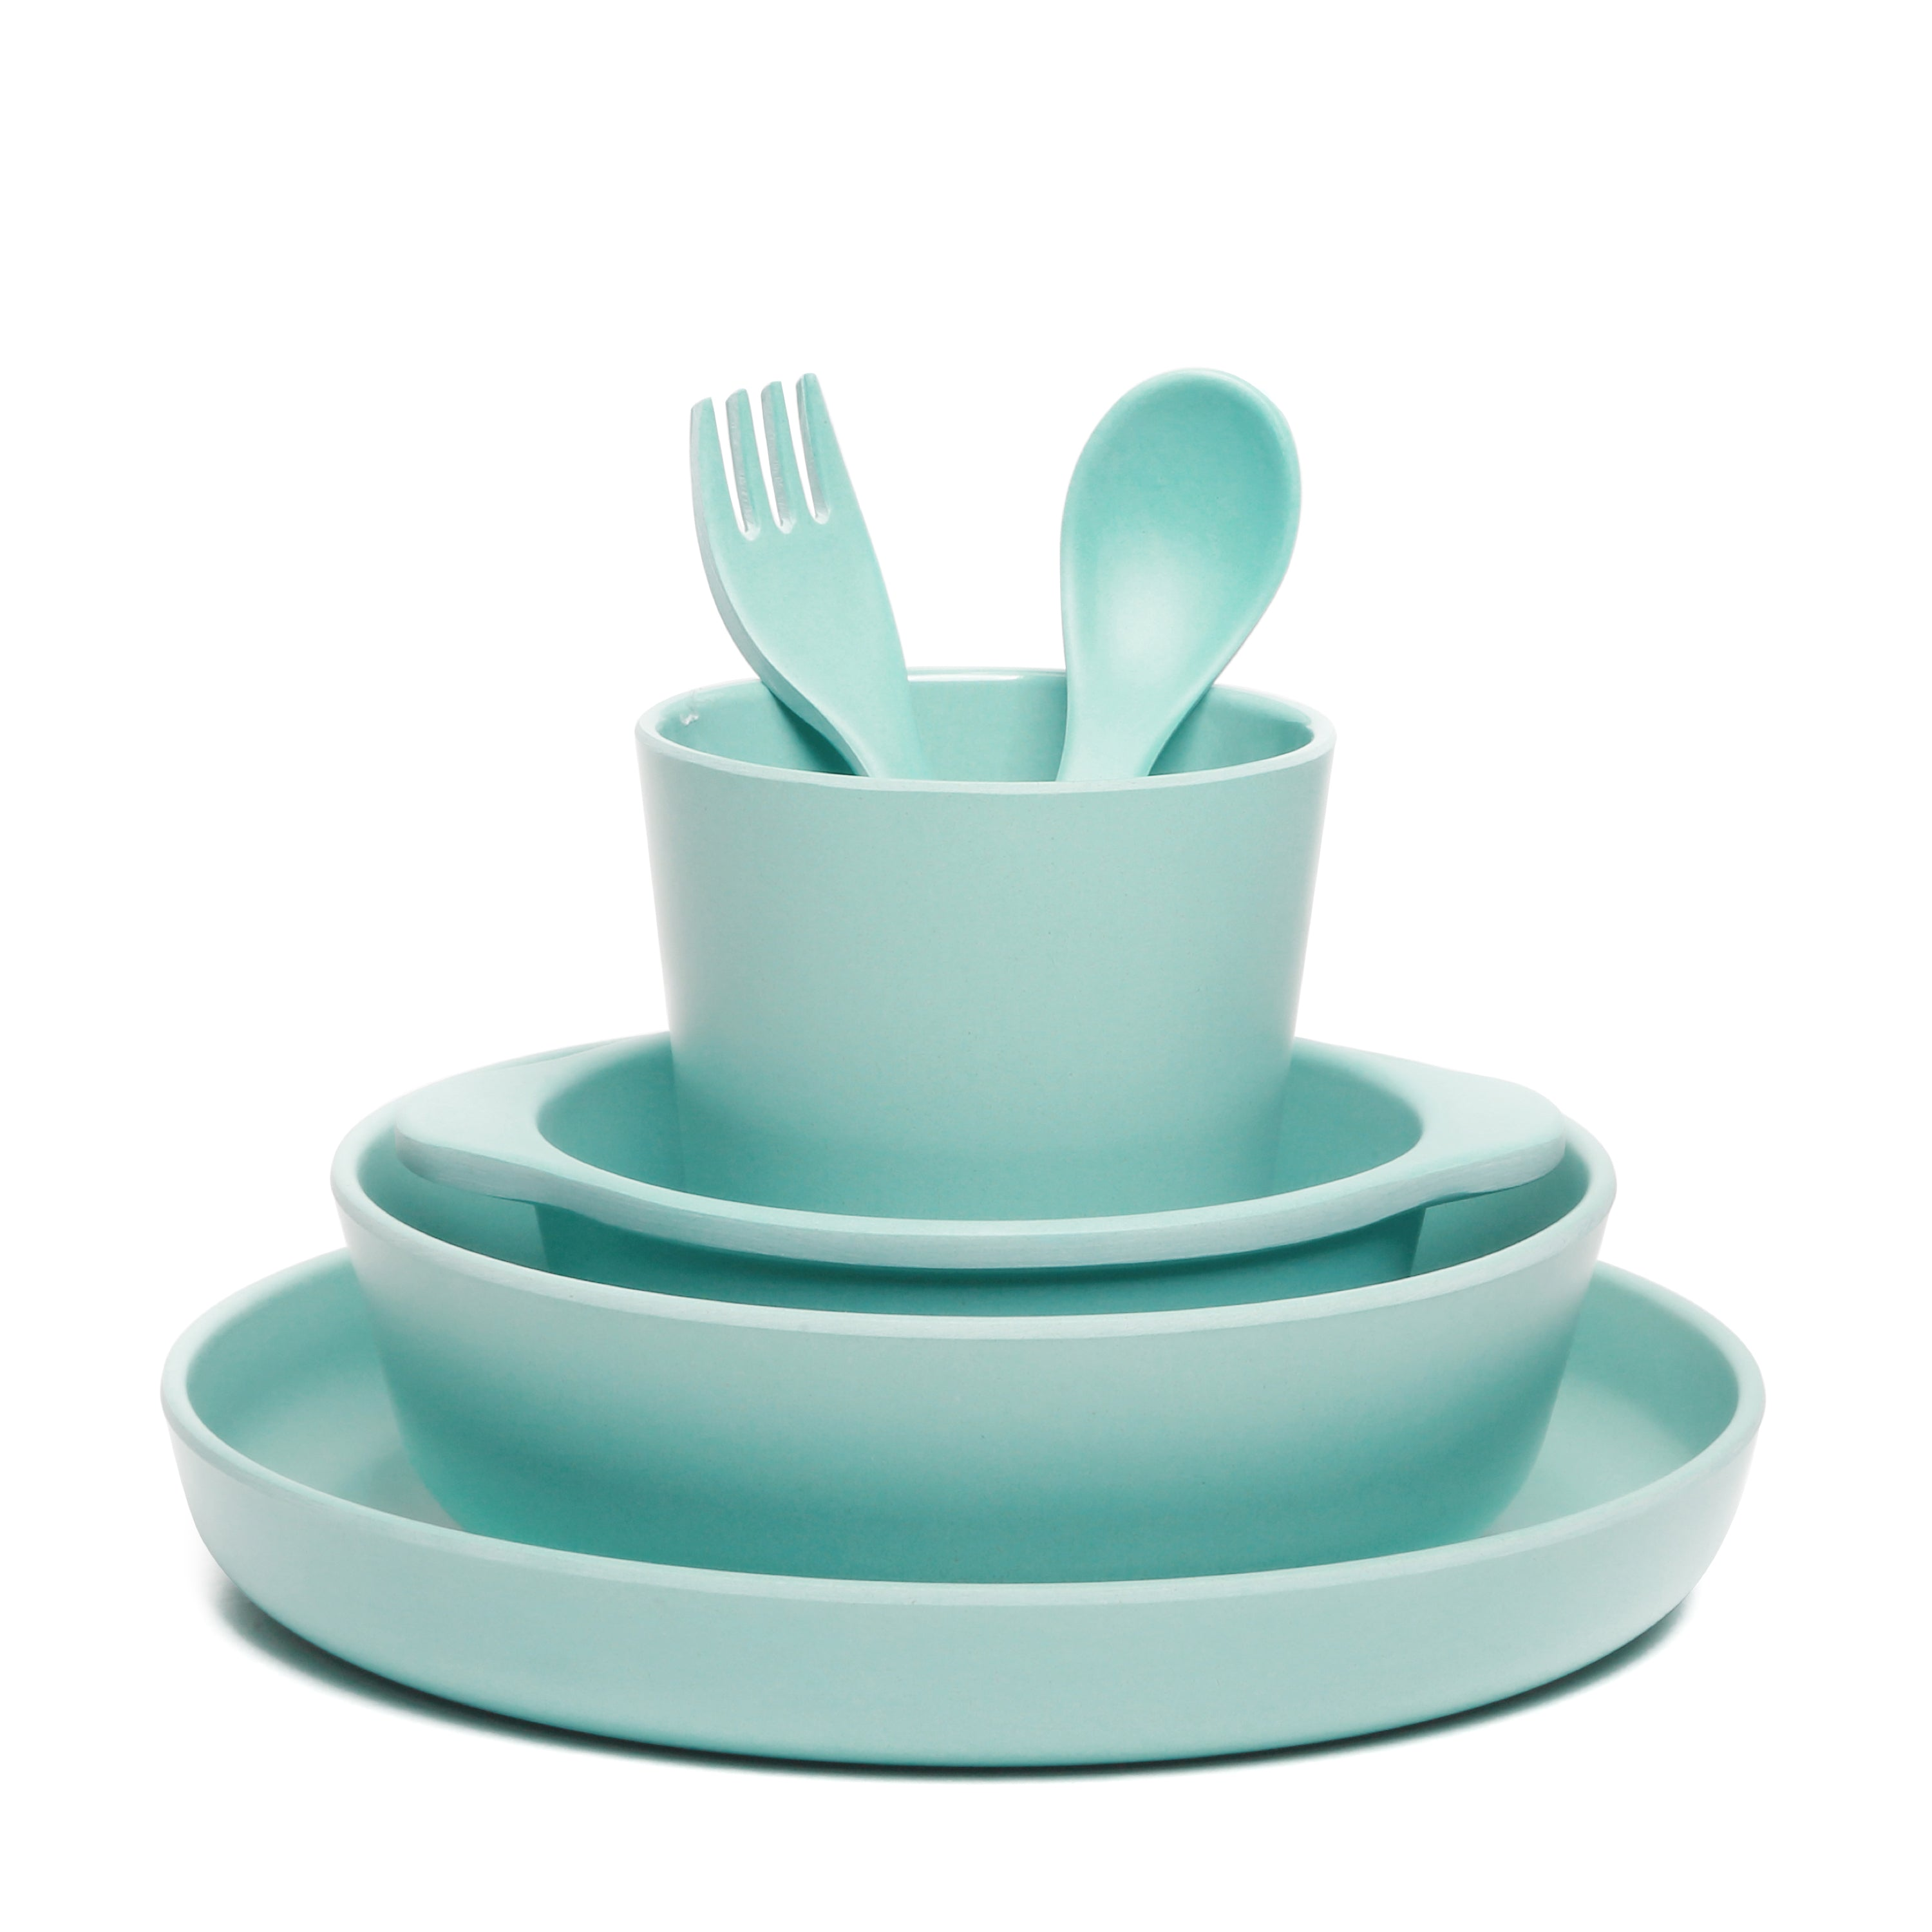 Bamboo 6 Piece Dinnerware Set - Mint